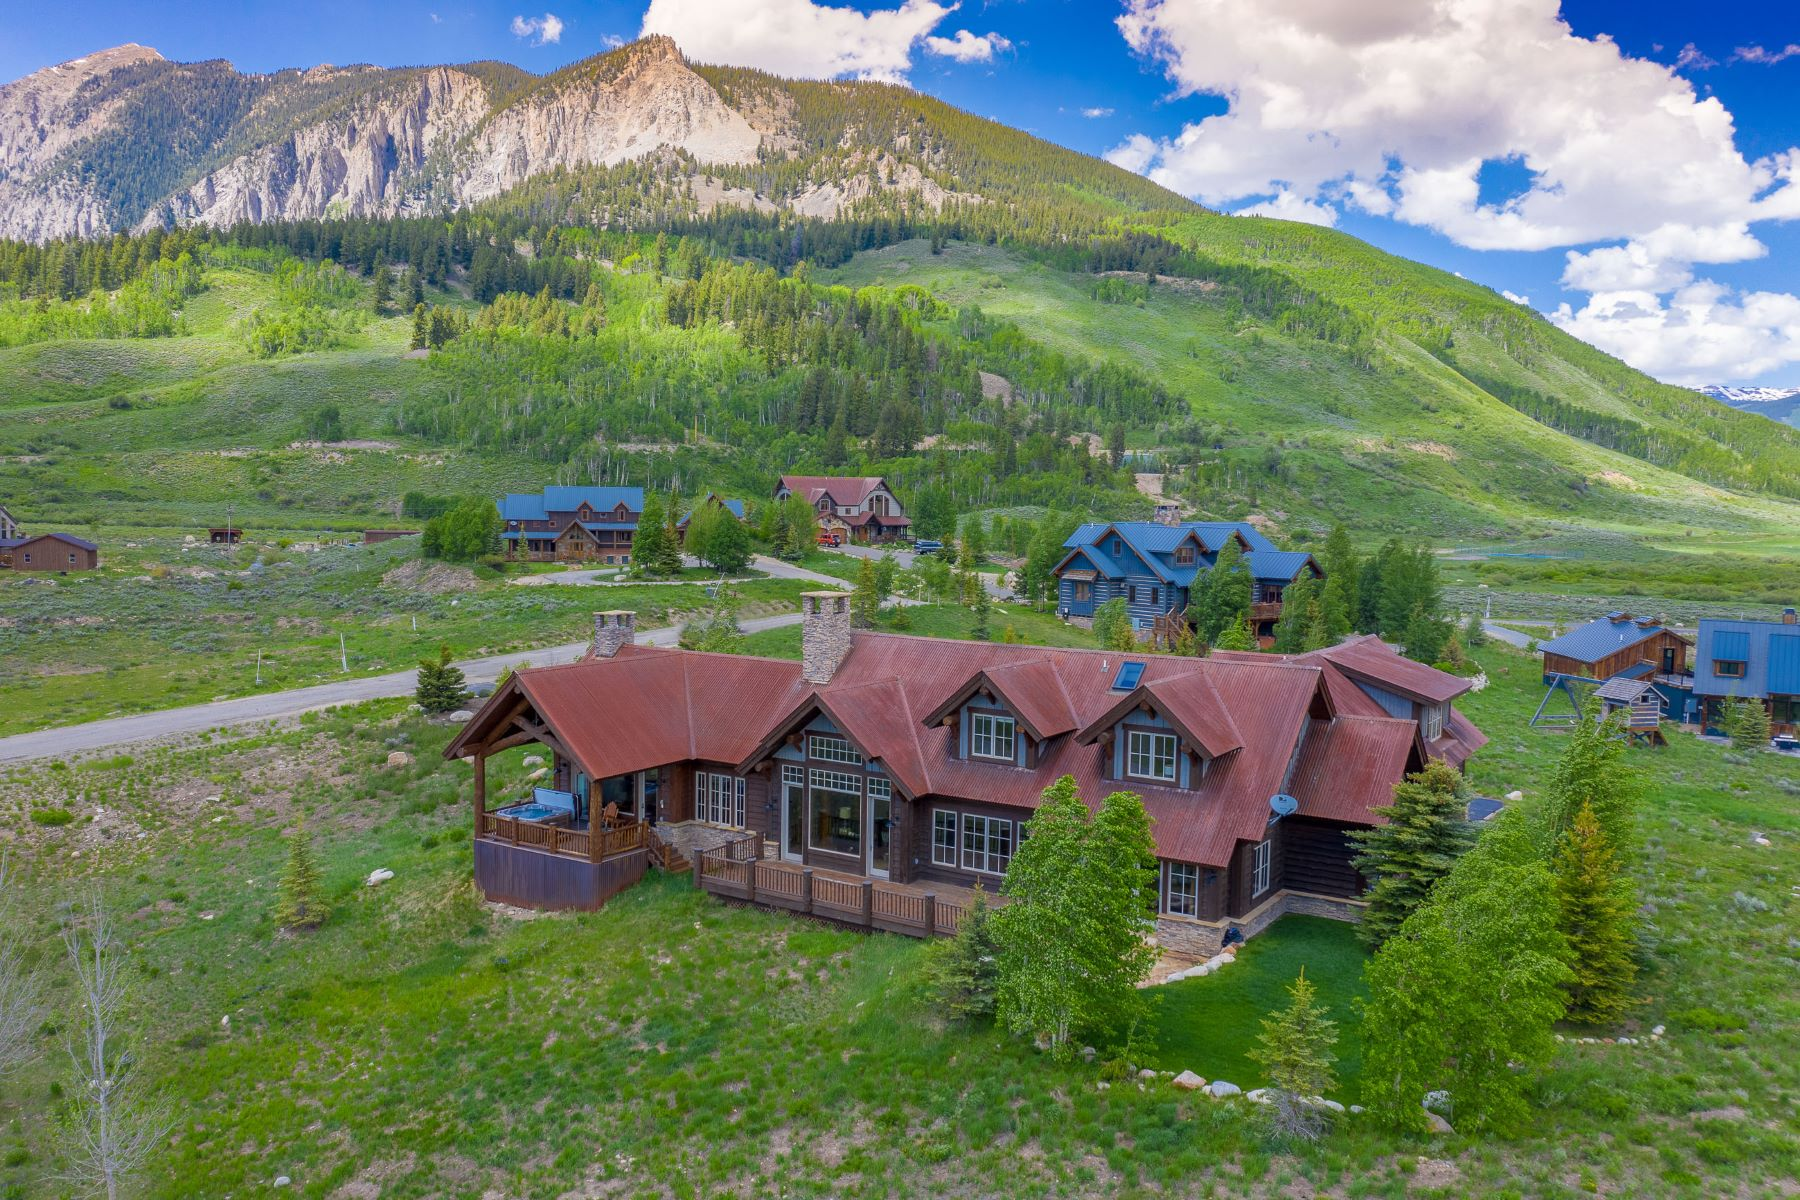 Single Family Homes for Active at Rustic Elegance at Buckhorn Ranch 15 Buckhorn Way Crested Butte, Colorado 81224 United States